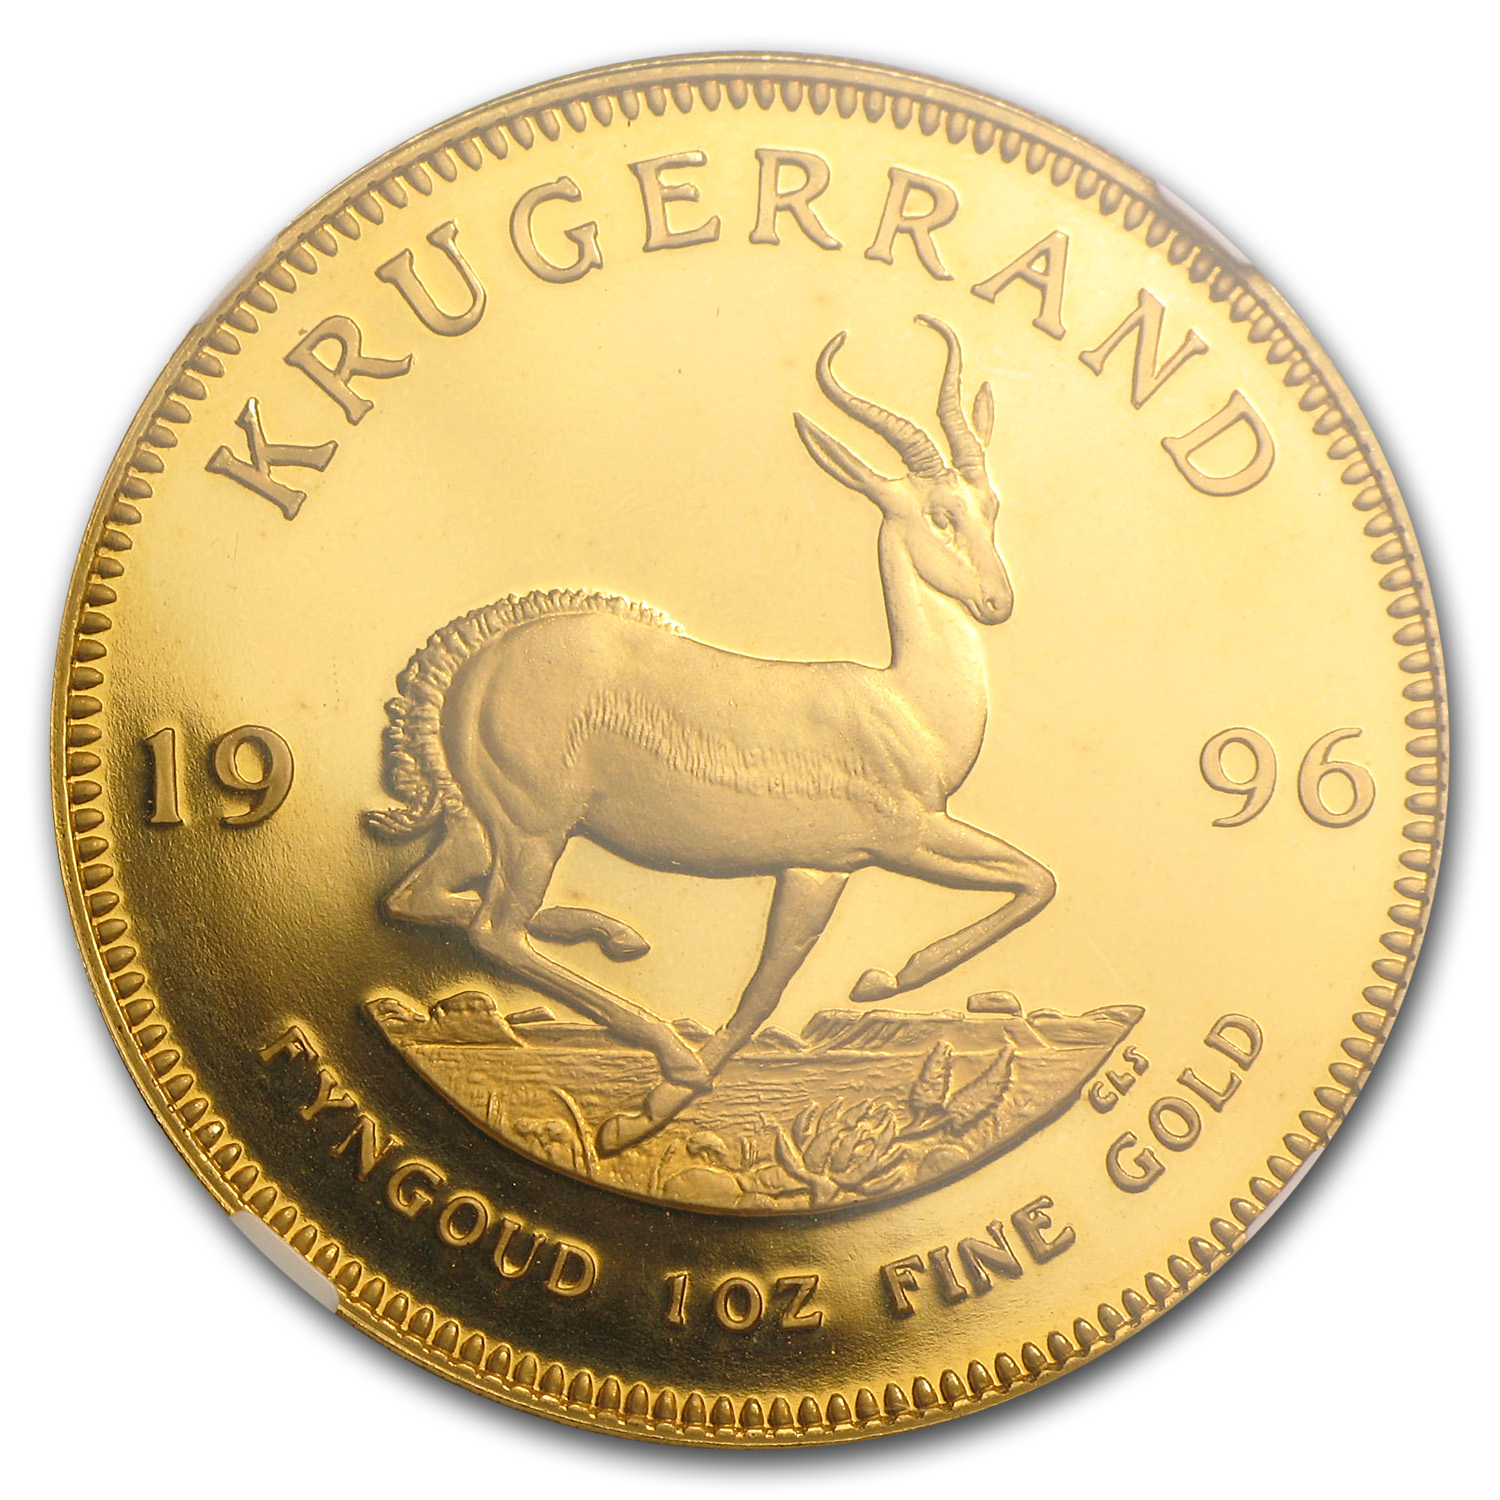 1996 1 oz Gold South African Krugerrand PF-67 NGC